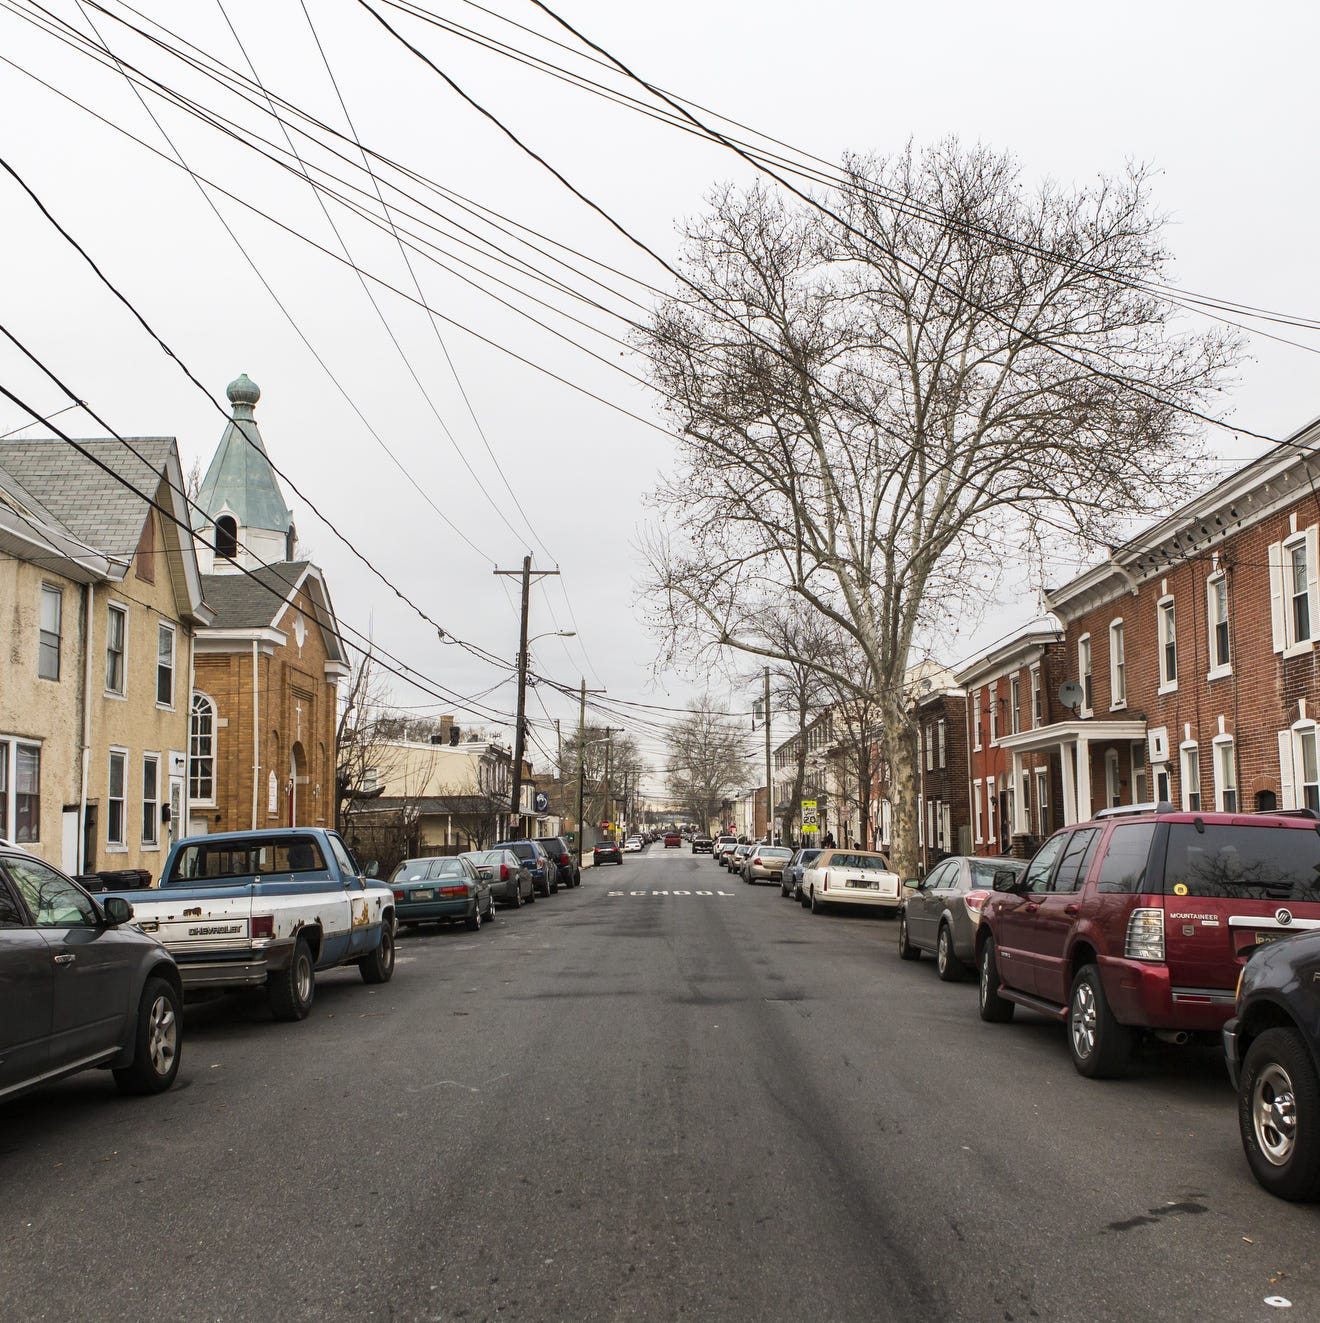 Wilmington: One of the hardest places to achieve the American Dream